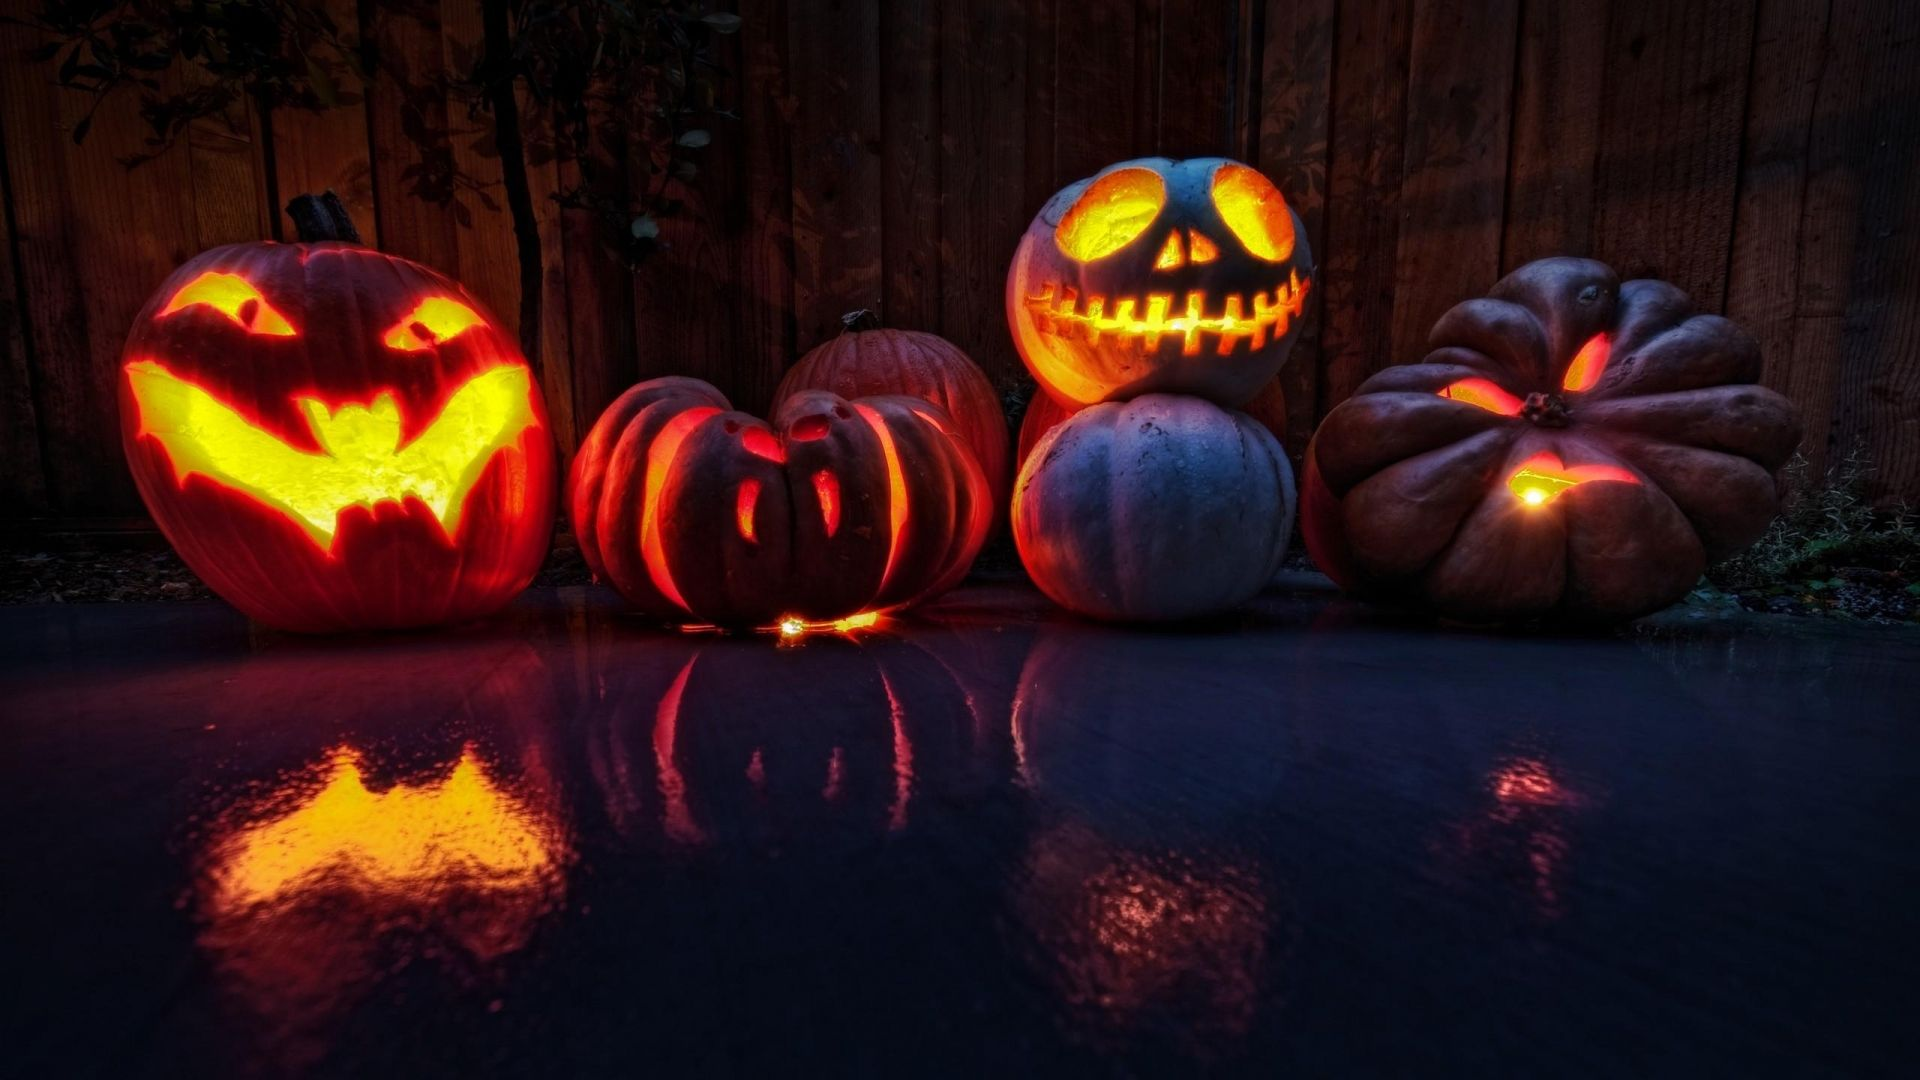 Halloween Wallpaper 1080p With Images Halloween Live Wallpaper